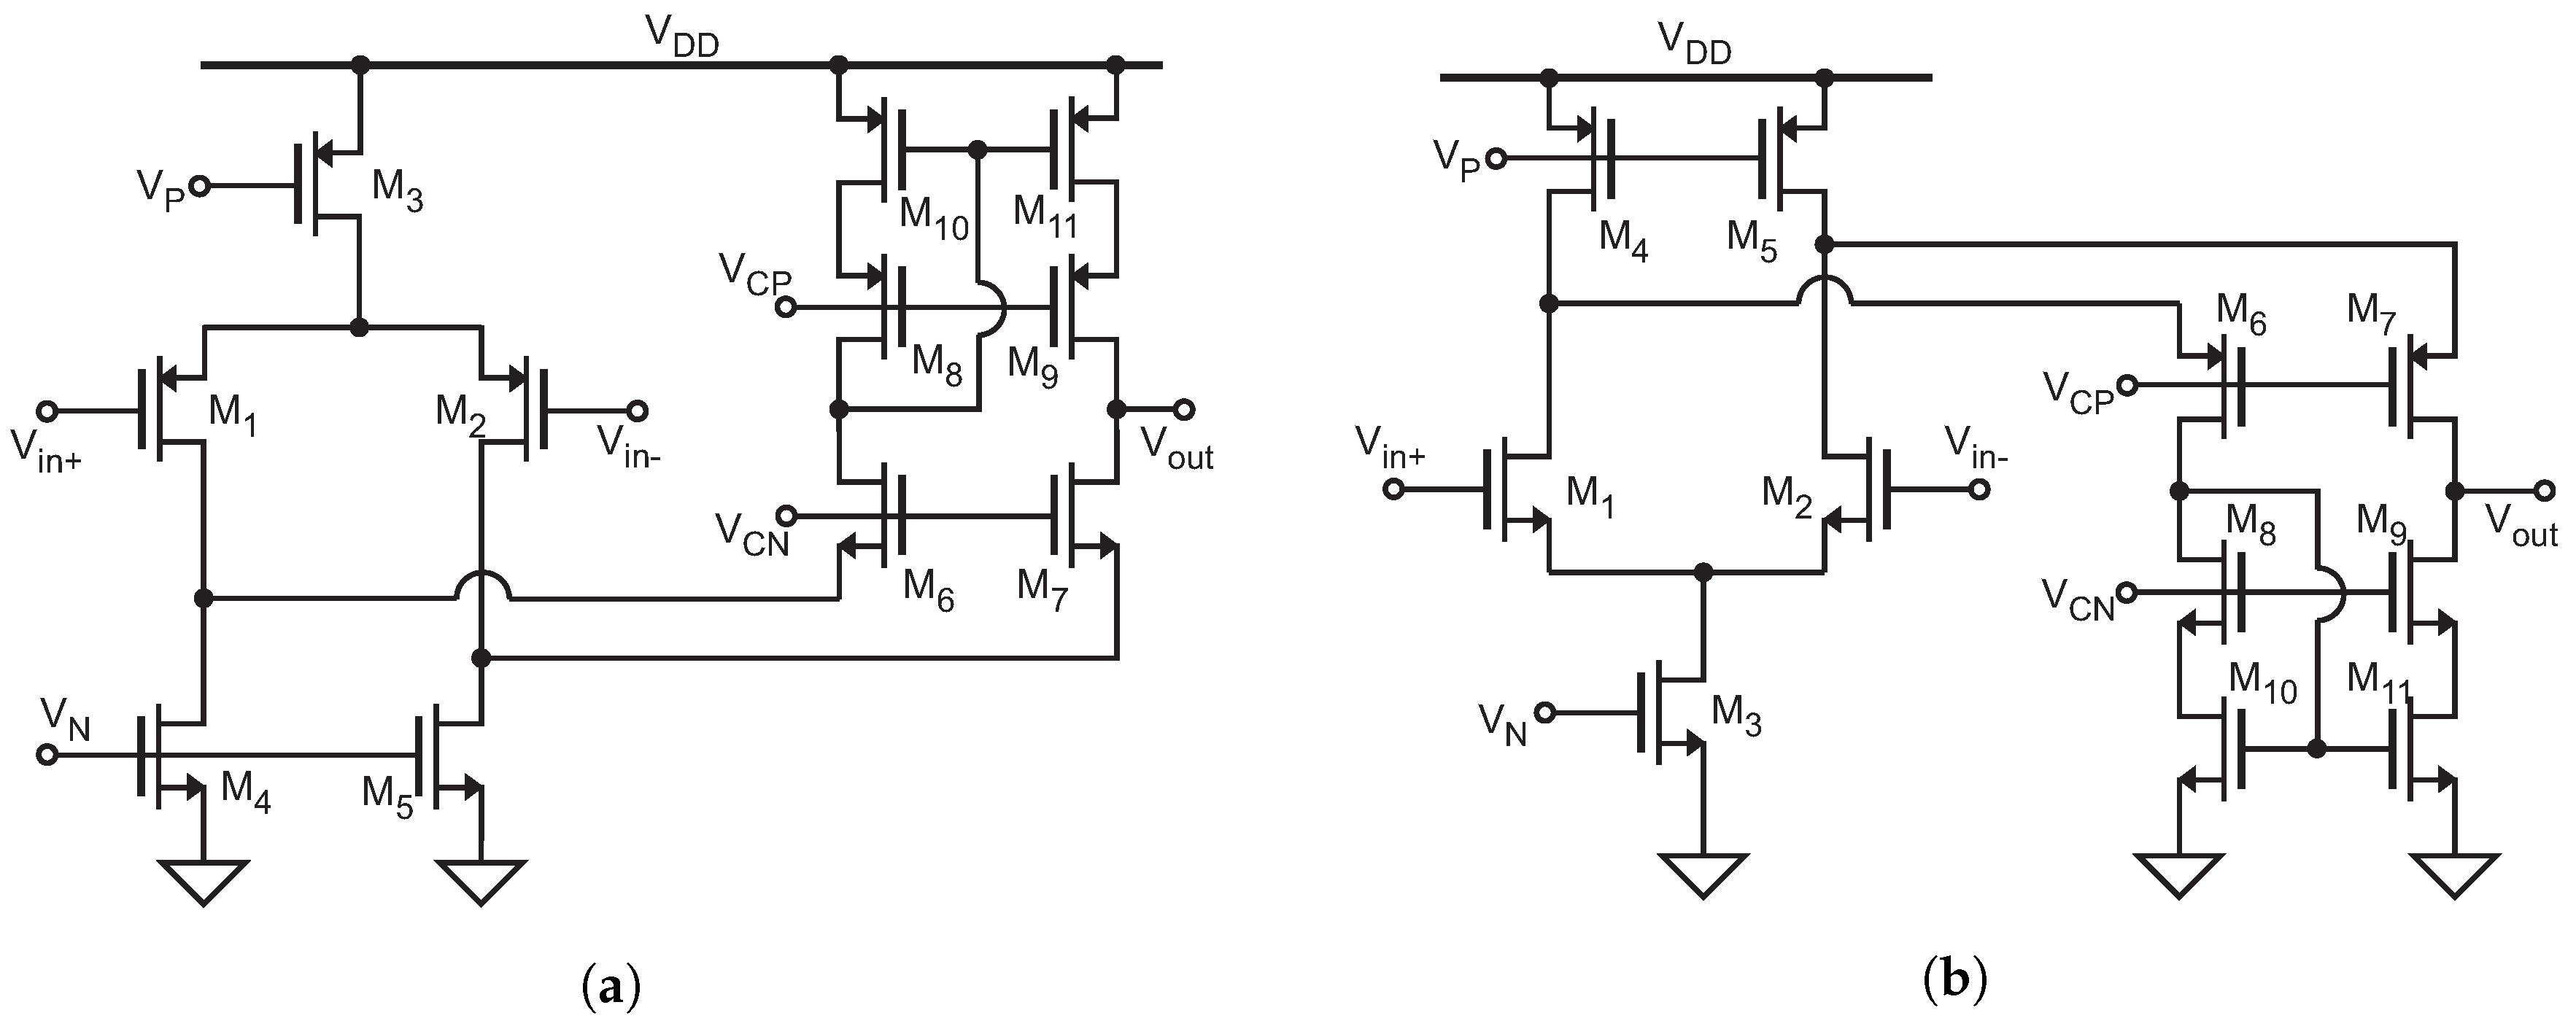 Sensors | Free Full-Text | Low-Power Highly Robust ... on b&m shifter installation, b&m shifter dimensions, nissan manual transmission diagram, hurst shifter wiring diagram, b&m quicksilver shifter, b&m shifter parts, b&m shifter cover, b&m automatic shifters, 700r4 shift linkage diagram,